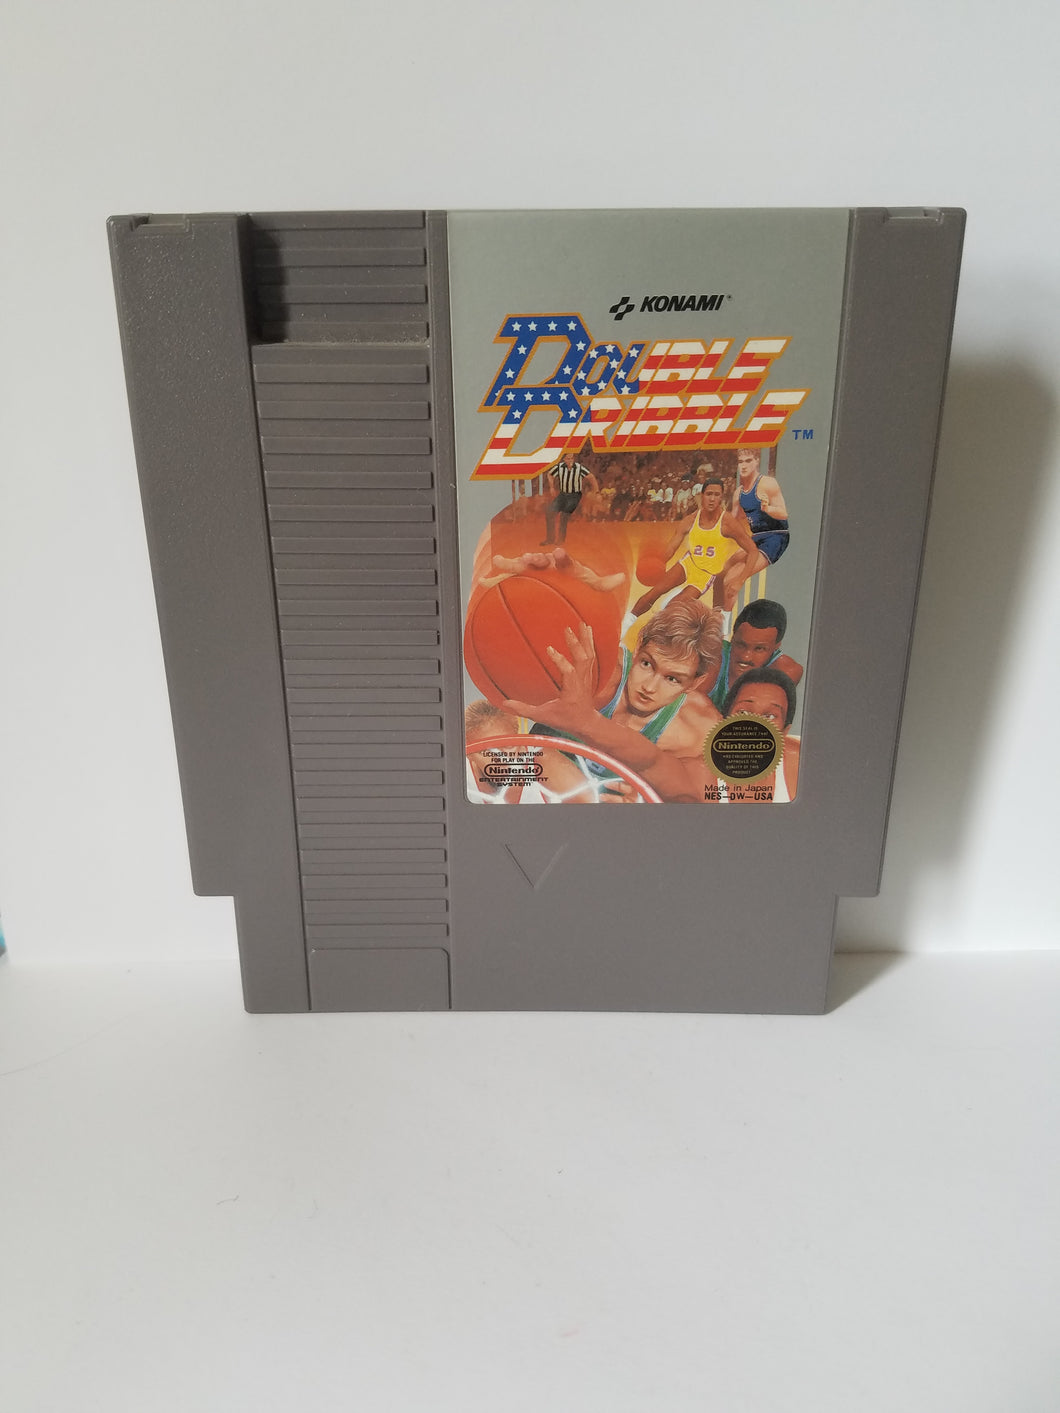 Nintendo Double Dribble Konami Game Cartridge